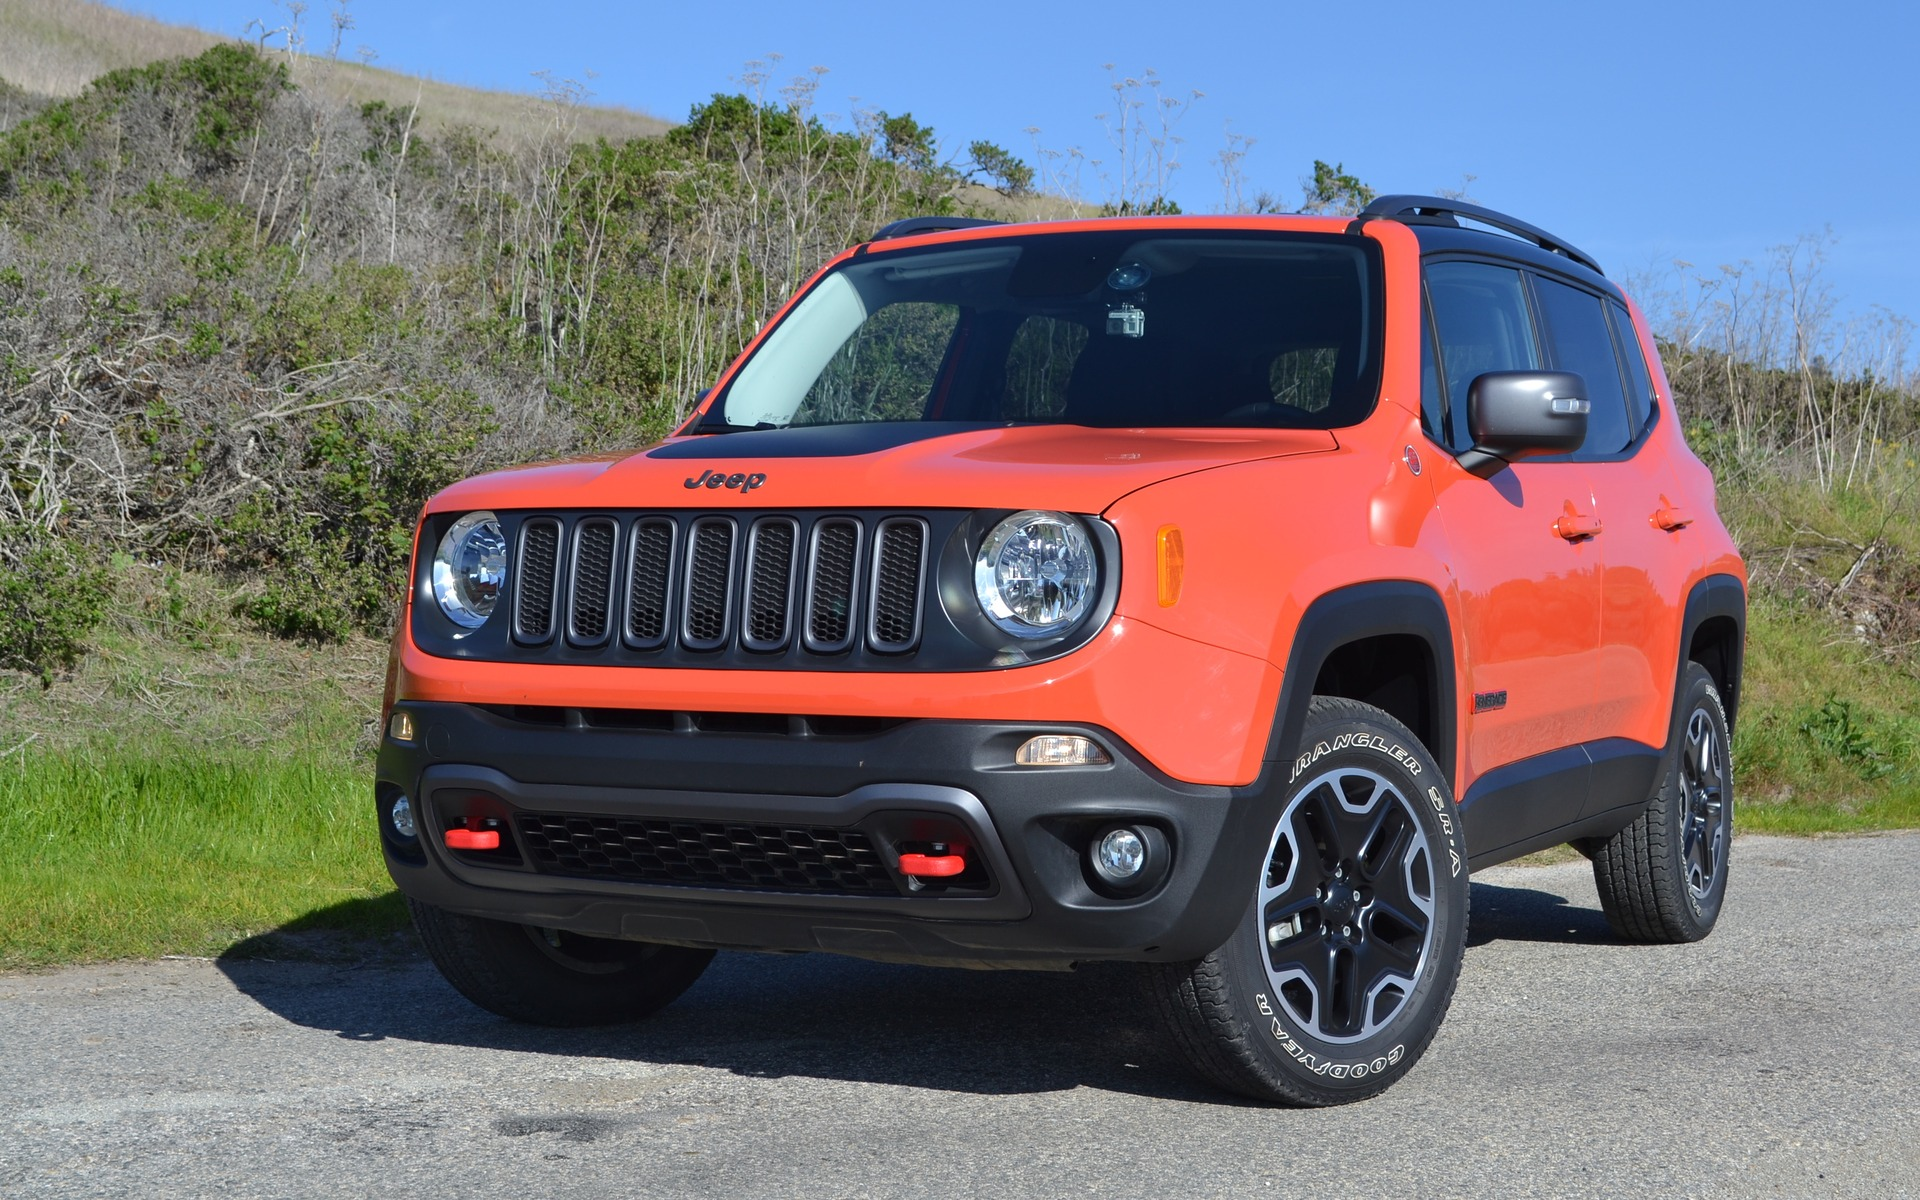 Jeep Renegade Lifted >> 2015 Jeep Renegade: Small, But Still A Jeep - The Car Guide